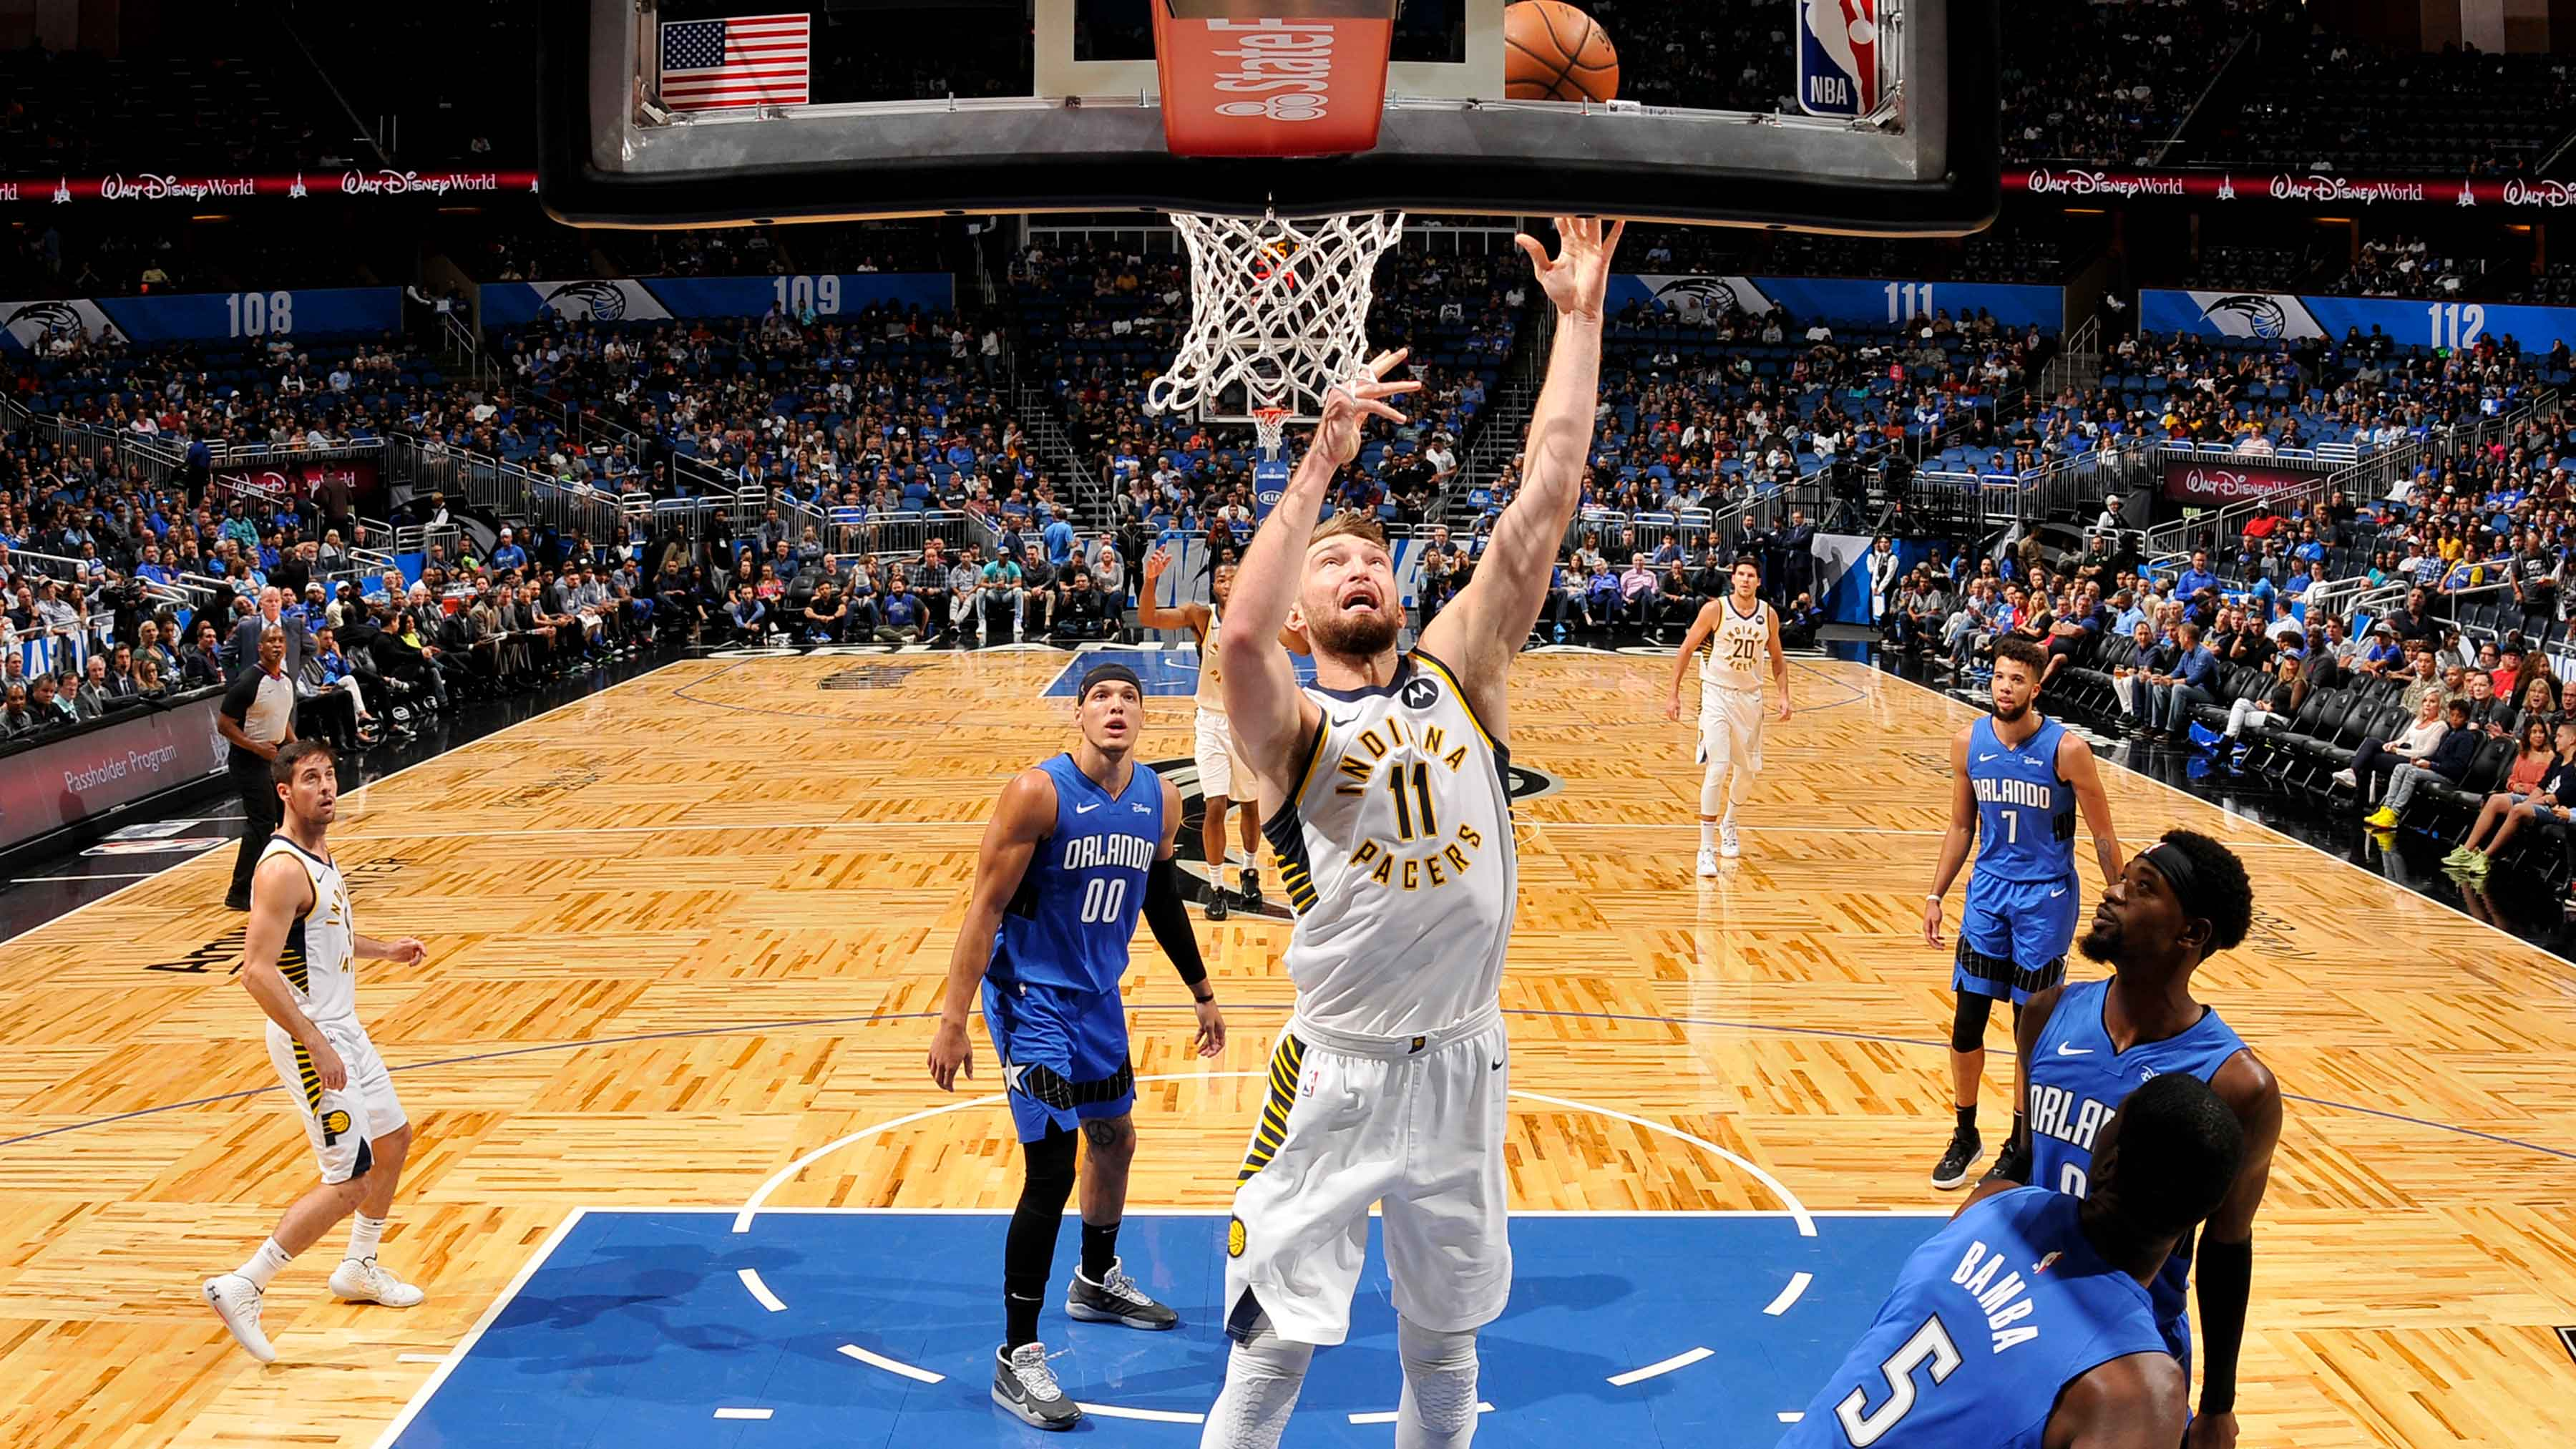 11.11.19. Обзор. GAME RECAP: Pacers 109, Magic 102